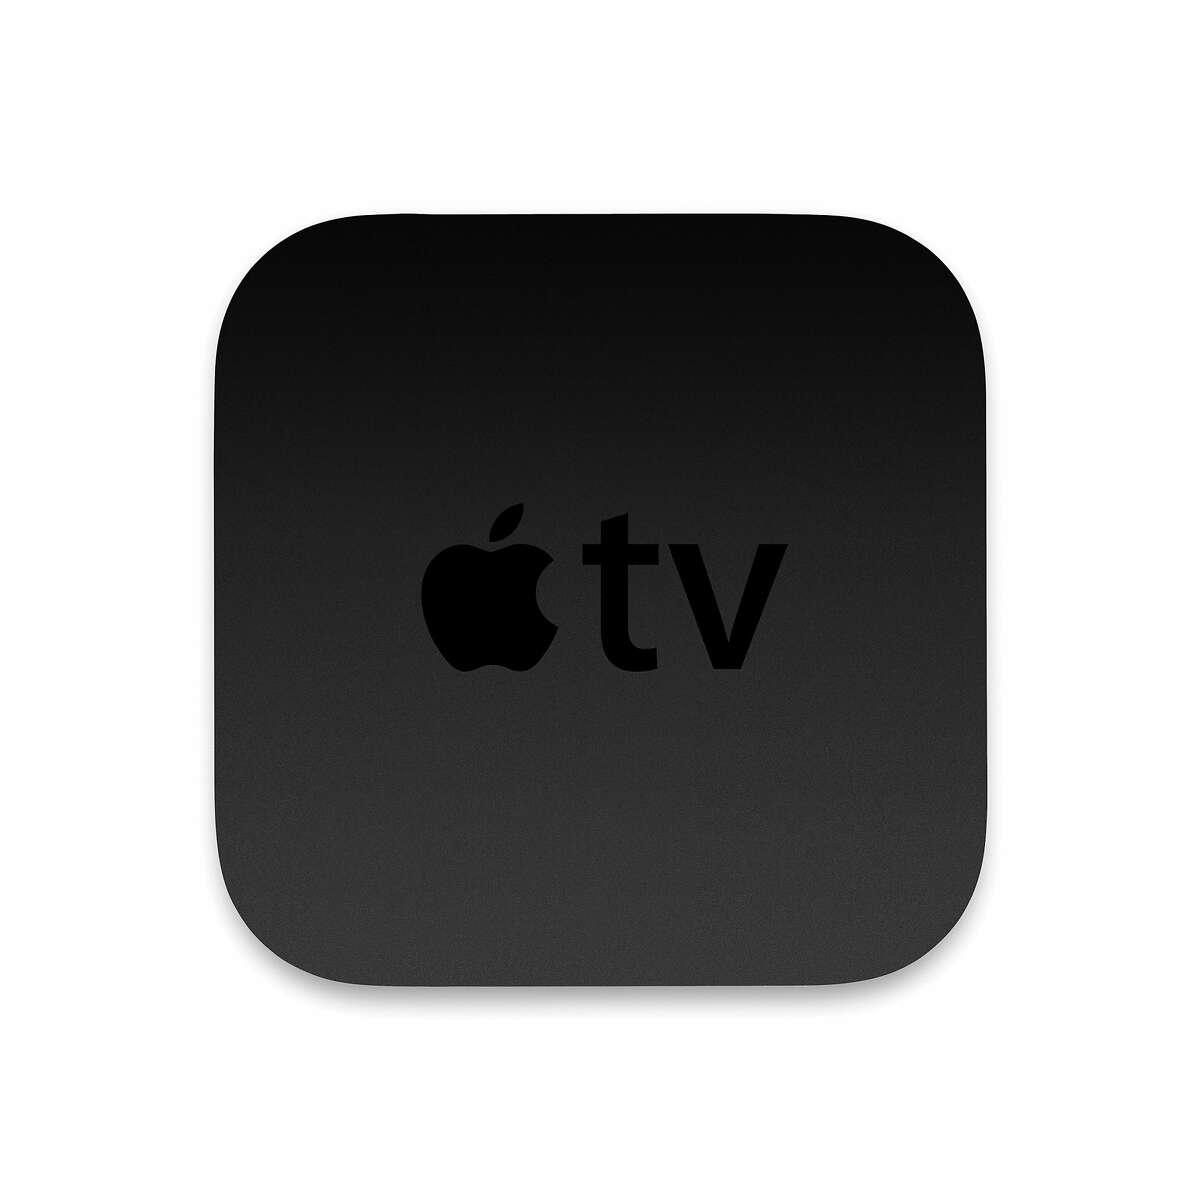 Apple® and HBO today announced HBO NOW is premiering next month, making an HBO subscription available directly to Apple customers for the first time ever. Along with the HBO NOW announcement, Apple will drop the price of Apple TV to $69 from $99.